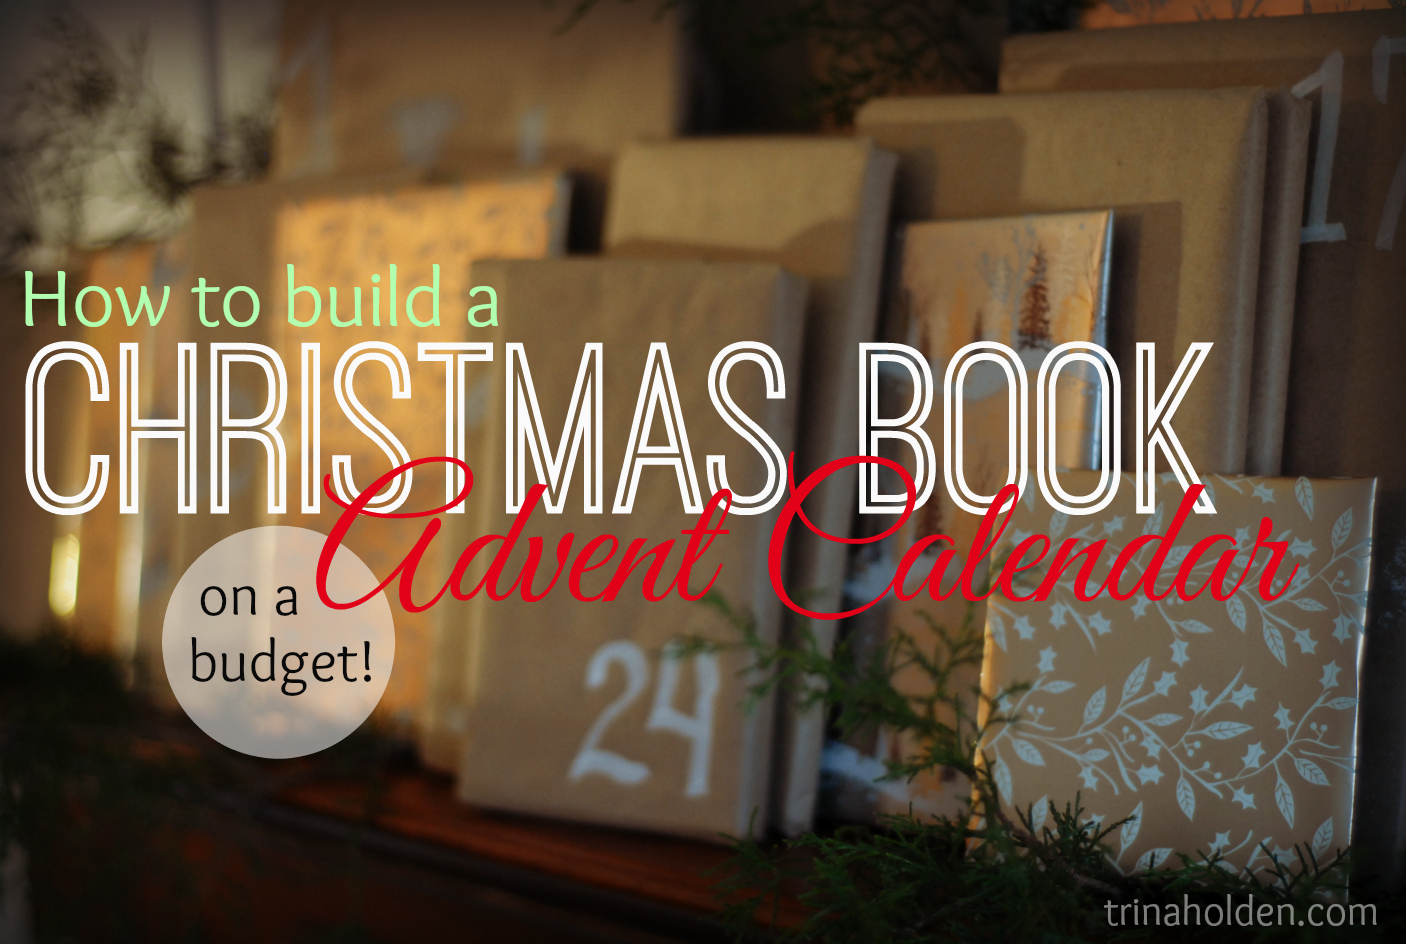 10 tips for building your family's #christmas #book collection without busting your #budget!